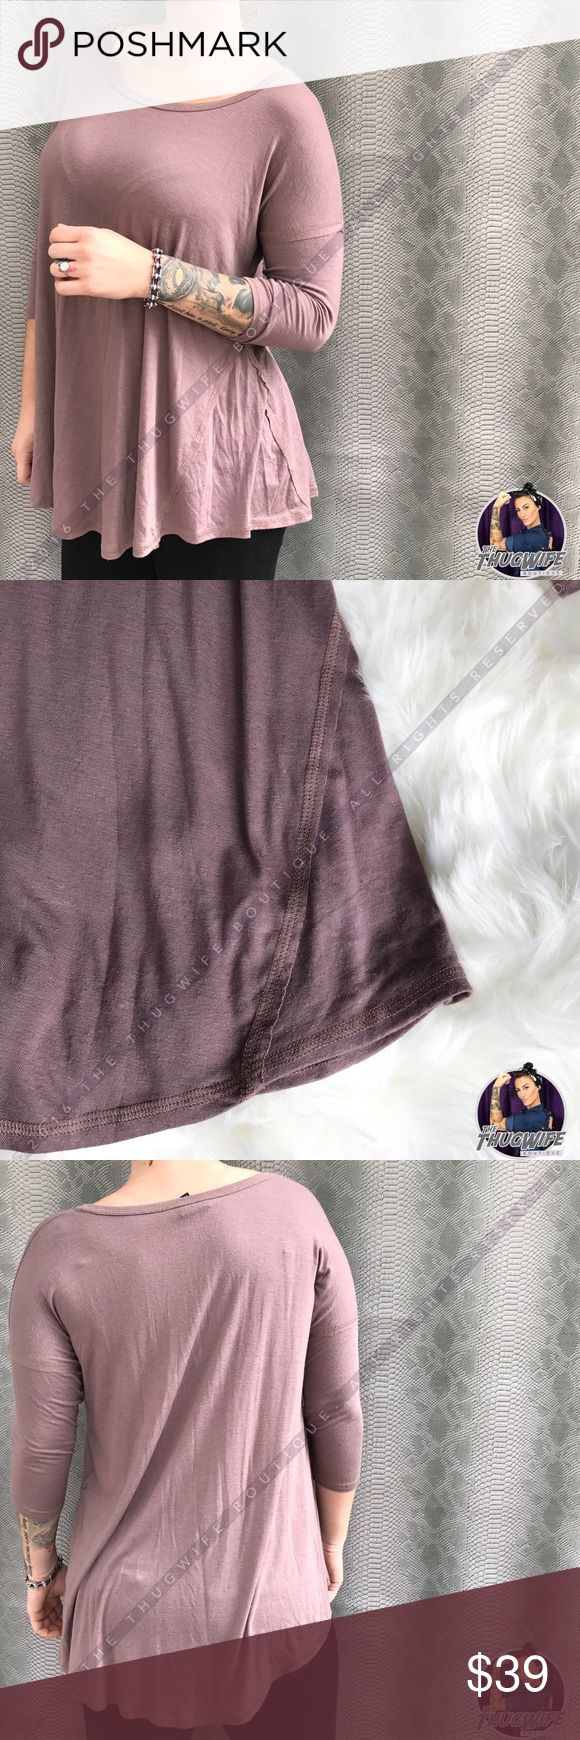 Rustic 3/4 sleeve trim tunic NEW WITH TAGS .       Casual cozy with this number ! Beautiful three quarter sleeve swoop scoop neck tunic .   The sleeves and wedges of waist have a fringe trim to give a little flare .  Pair with a long necklace and your favorite jeans and you're in heaven 😍   Use the OFFER BUTTON • bundle for 10% off   🤗 please no drama ladies lets be nice 🤗  • 5 star rating • 500+ sales  • smoke free home  • always 100% authentic  |💀| www.thethugwife.com |💀|   N O…